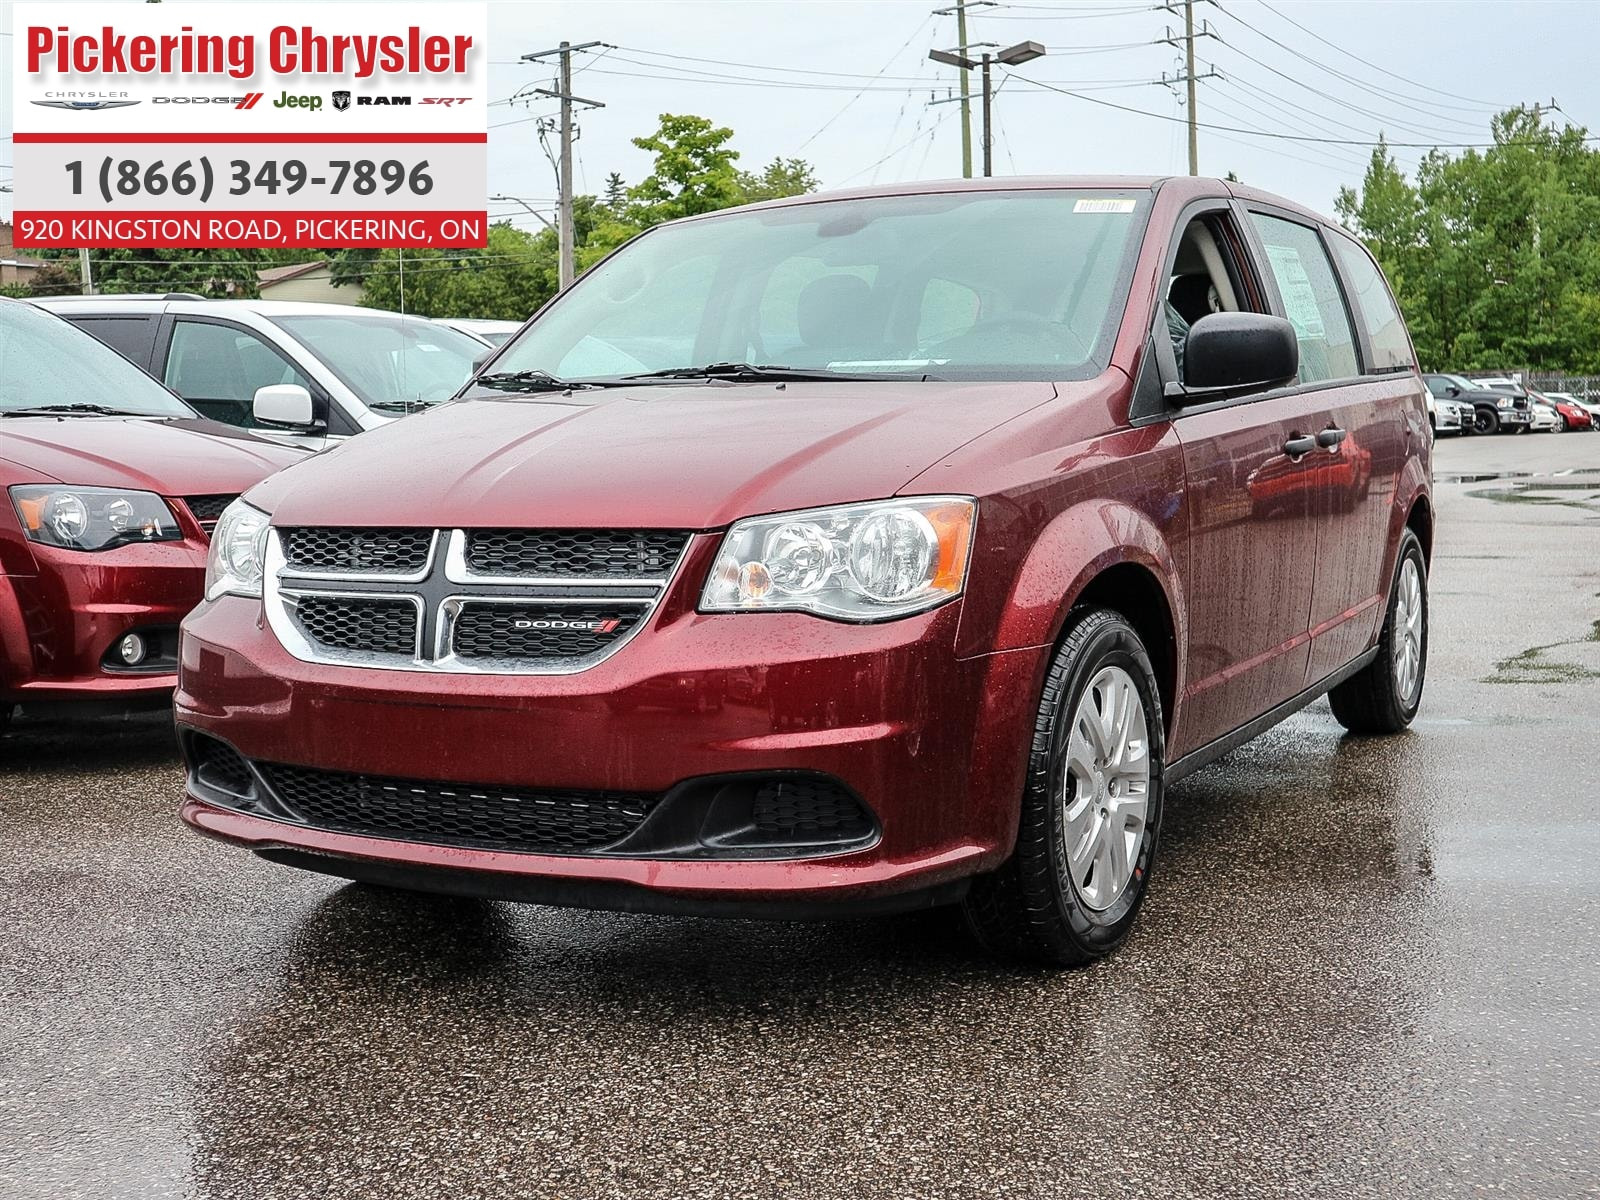 2019 Dodge Grand Caravan REAR CAMERA AIR CONDITIONG 3RD ROW STOW AND GO Van